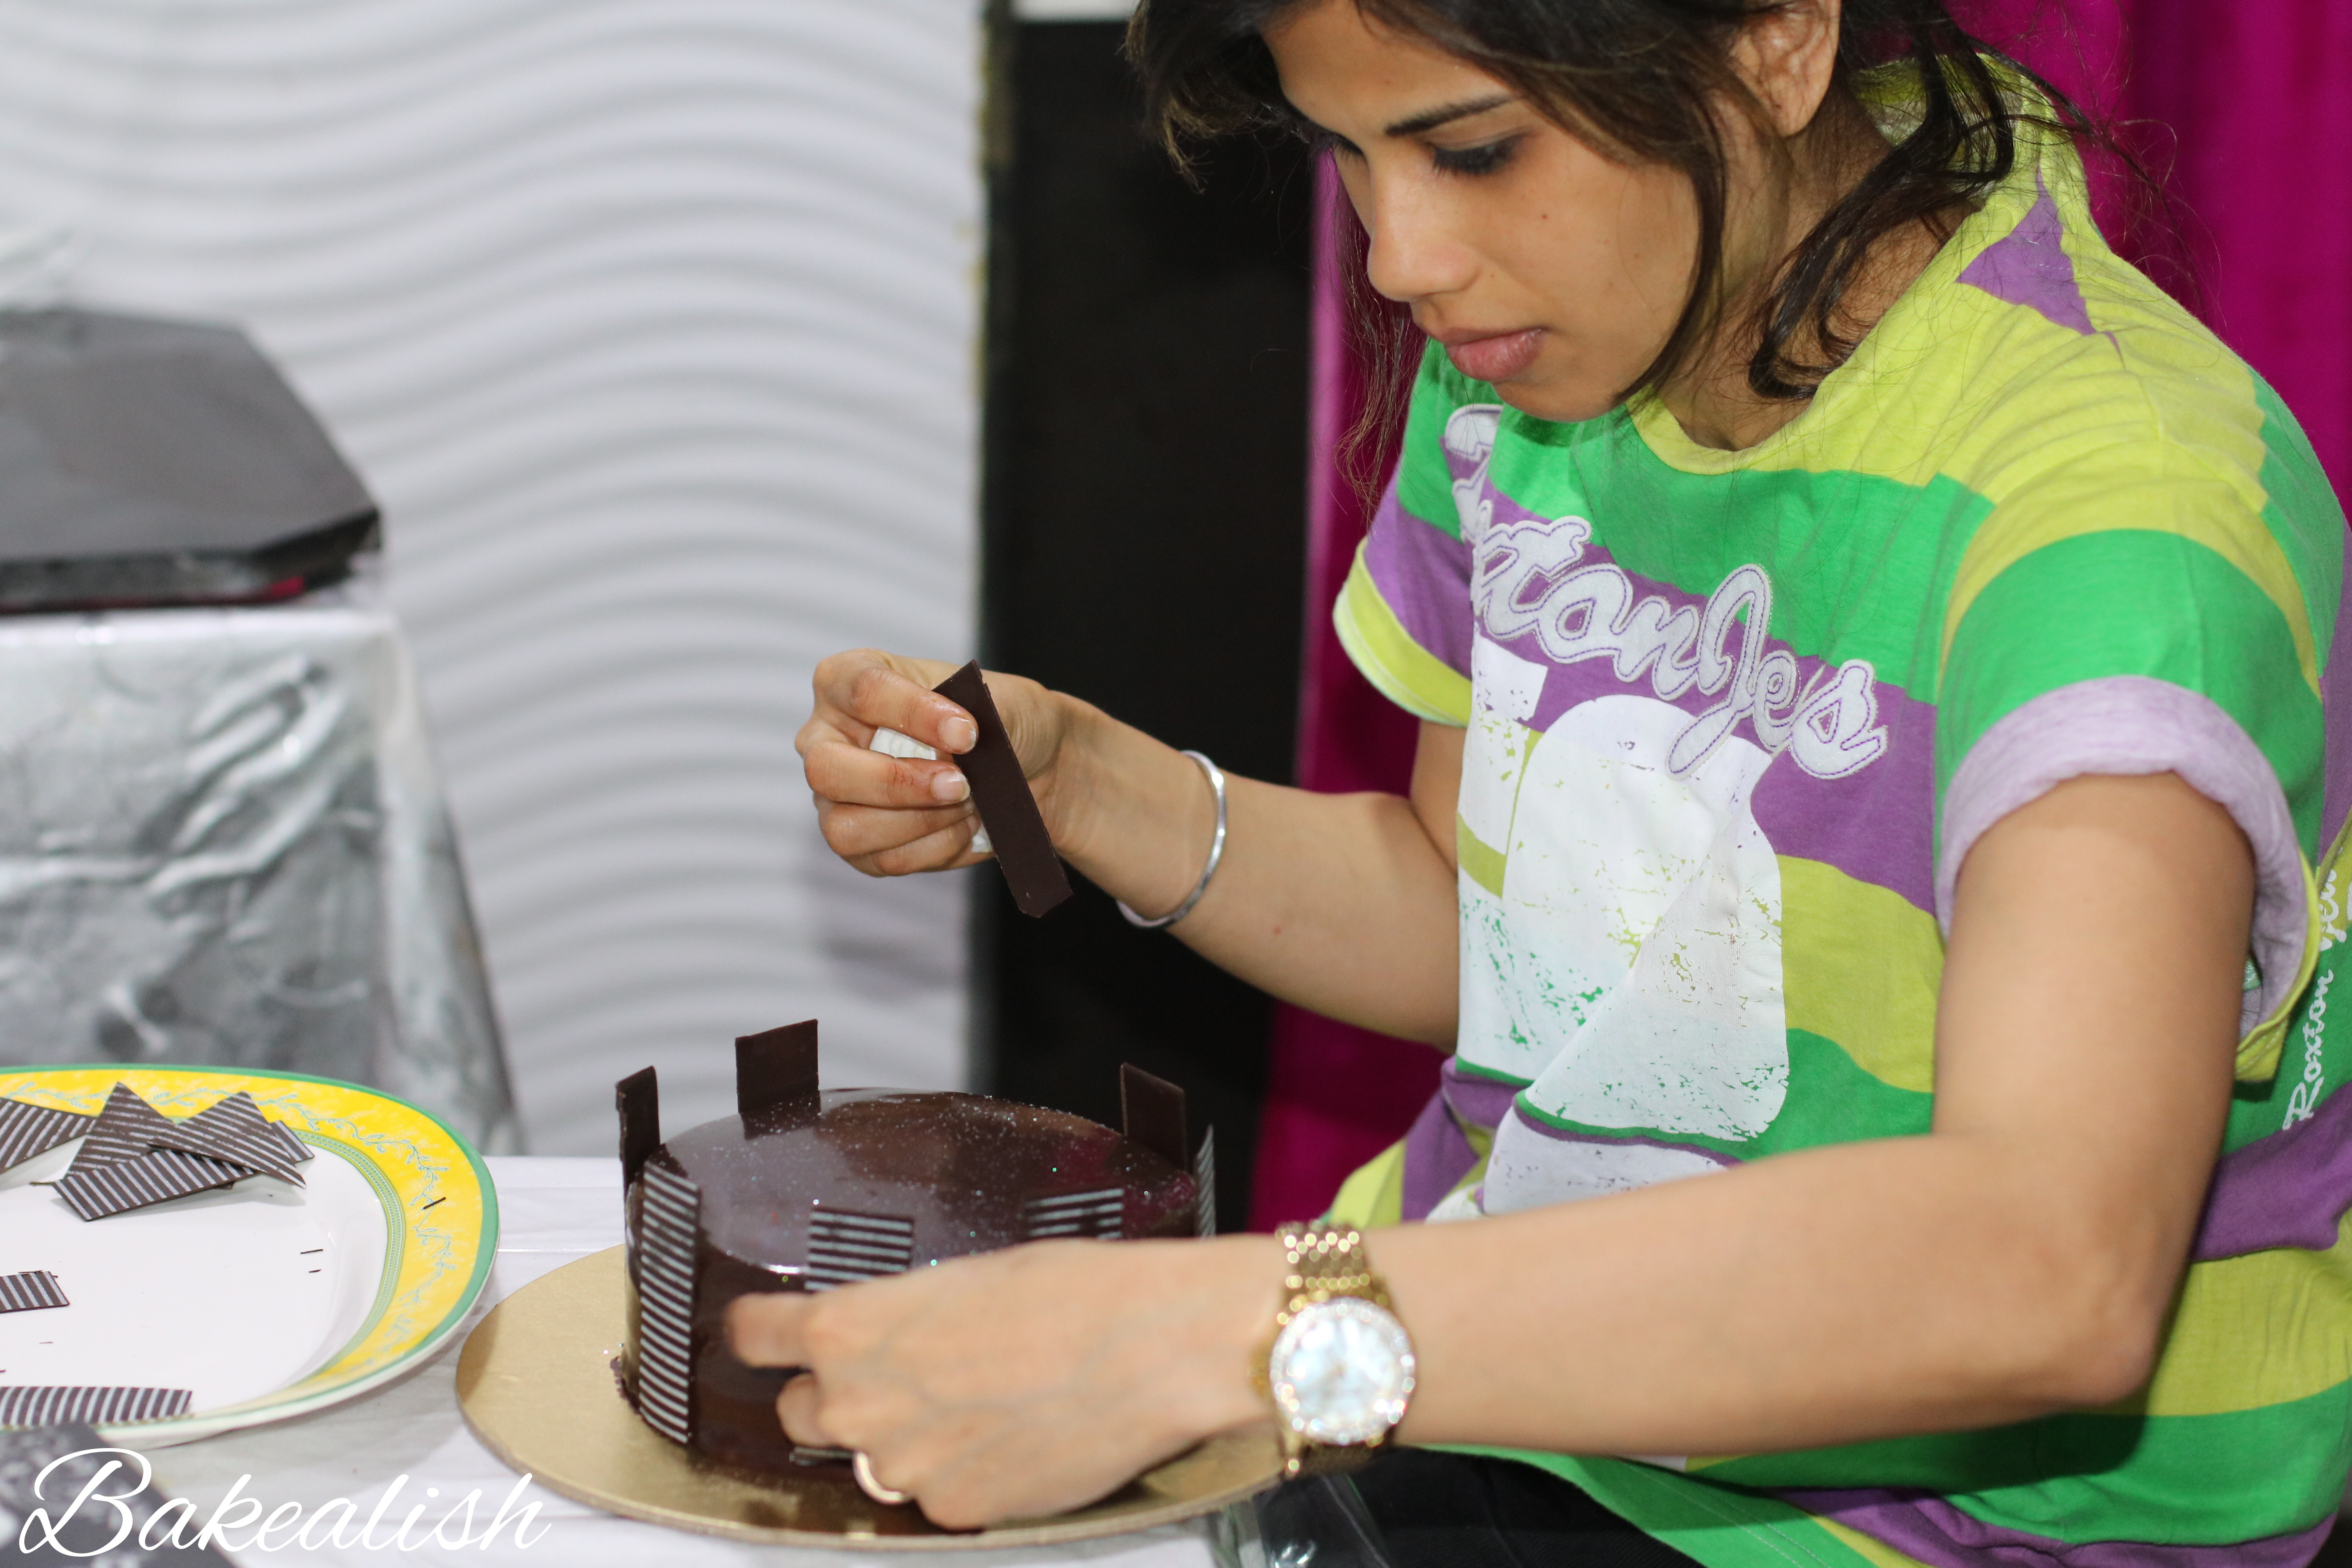 This Workshop on Fresh Cream Cakes is for students who are looking to learn the right techniques and skills required to make world-class fresh cream cakes